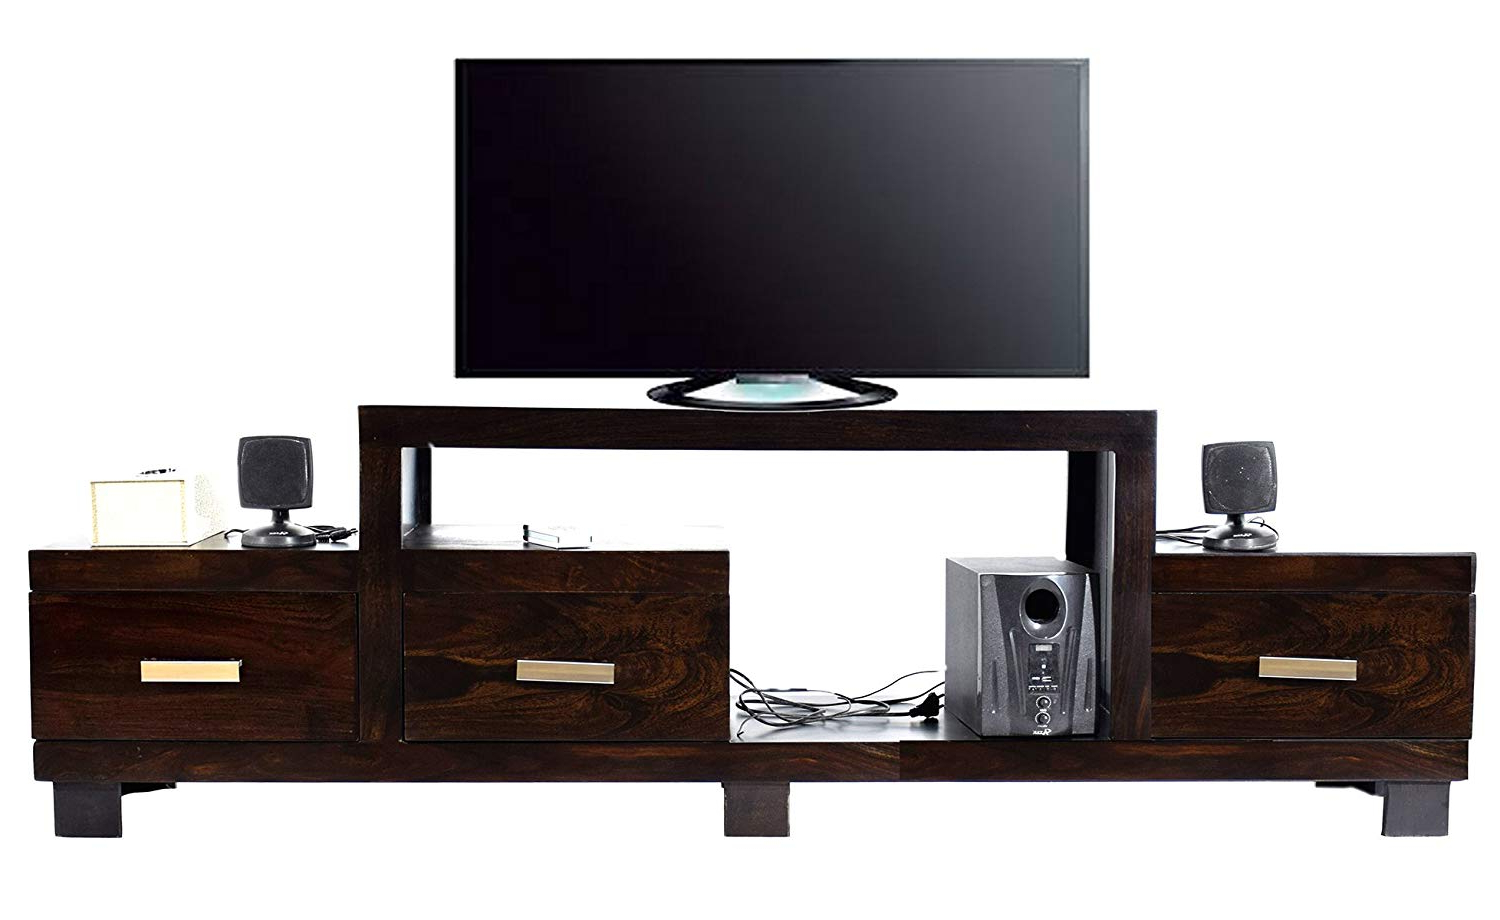 Well Liked Daintree Tv Stands With Regard To Daintree Timbertaste Sheesham Wood 1.75 Meter 3 Draw Newnadia Tv (Gallery 16 of 20)